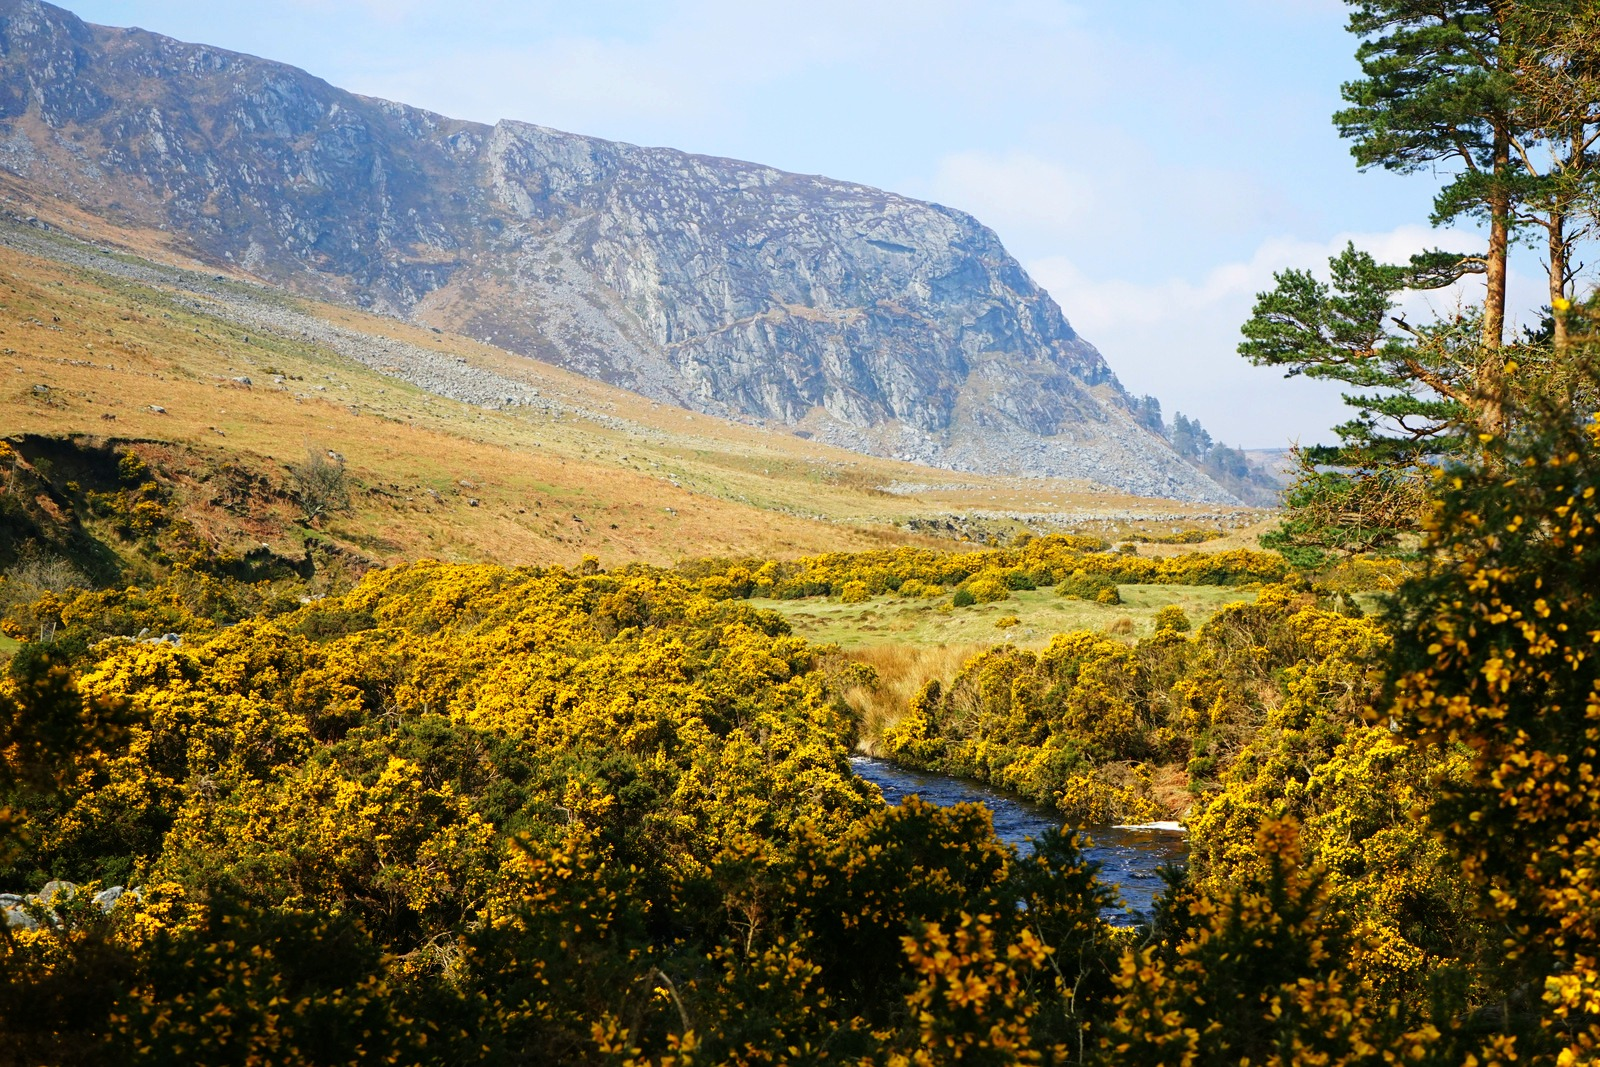 luggala-estate-valley-cliffs-cloghoge-river-gorse-flowers-wicklow-ireland